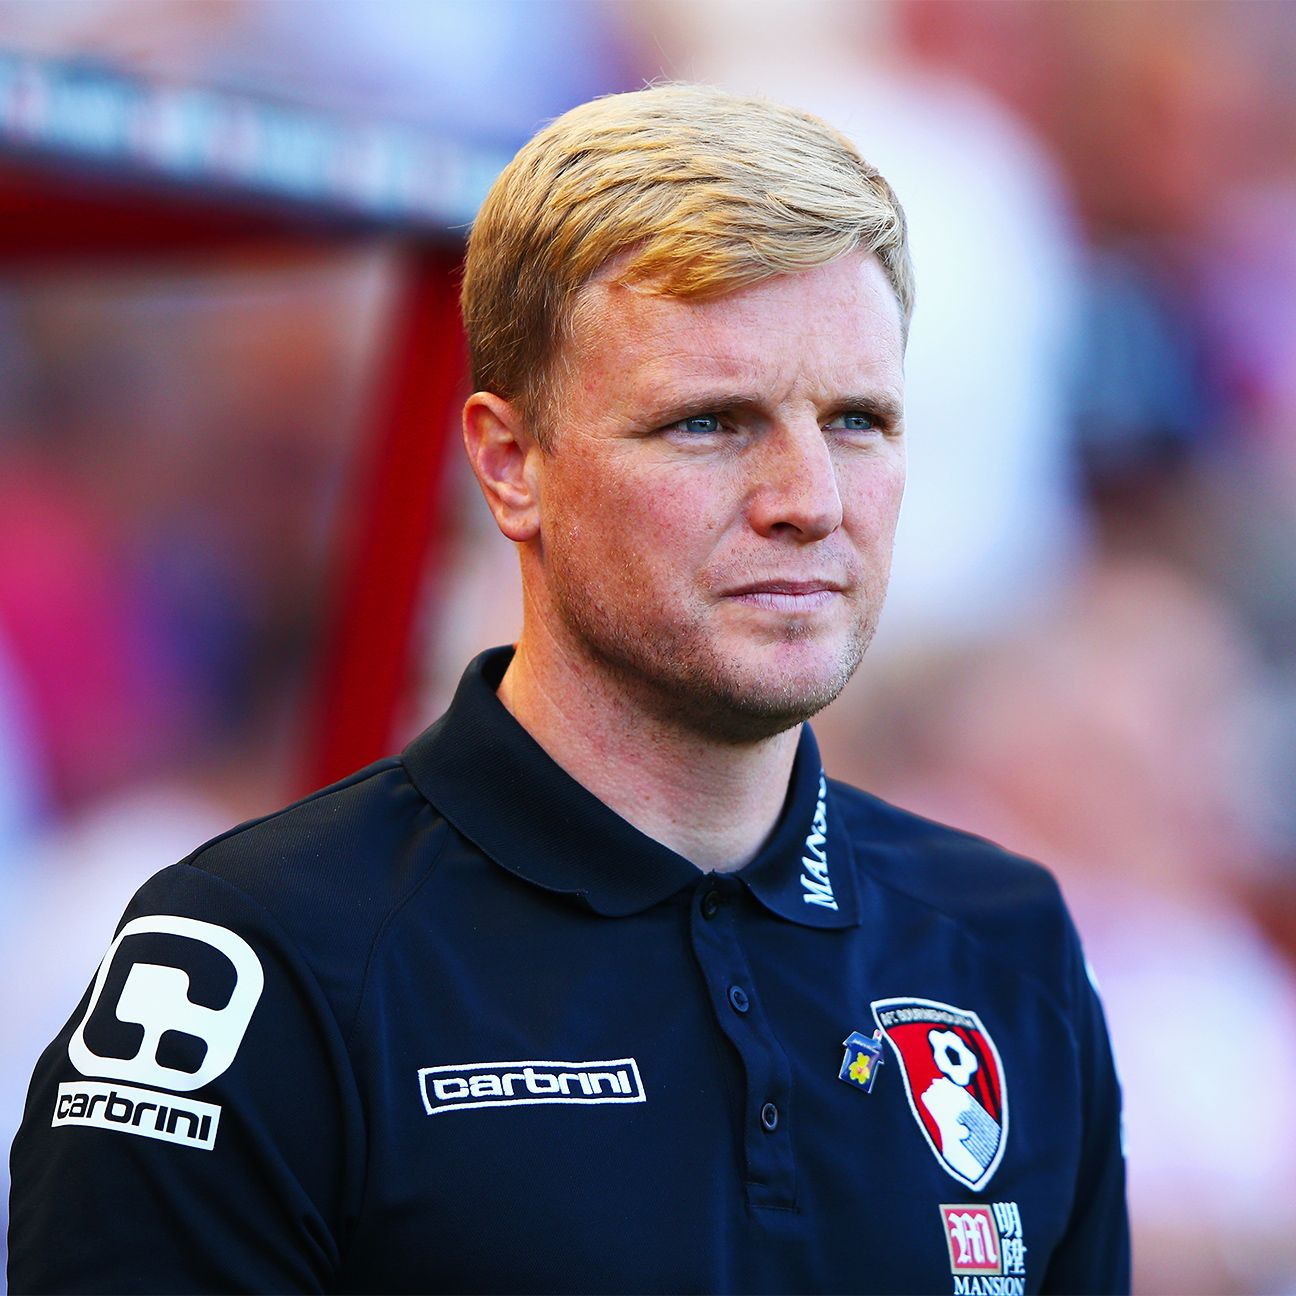 Eddie Howe's work in leading Bournemouth to the Premier League was a thing of legends.